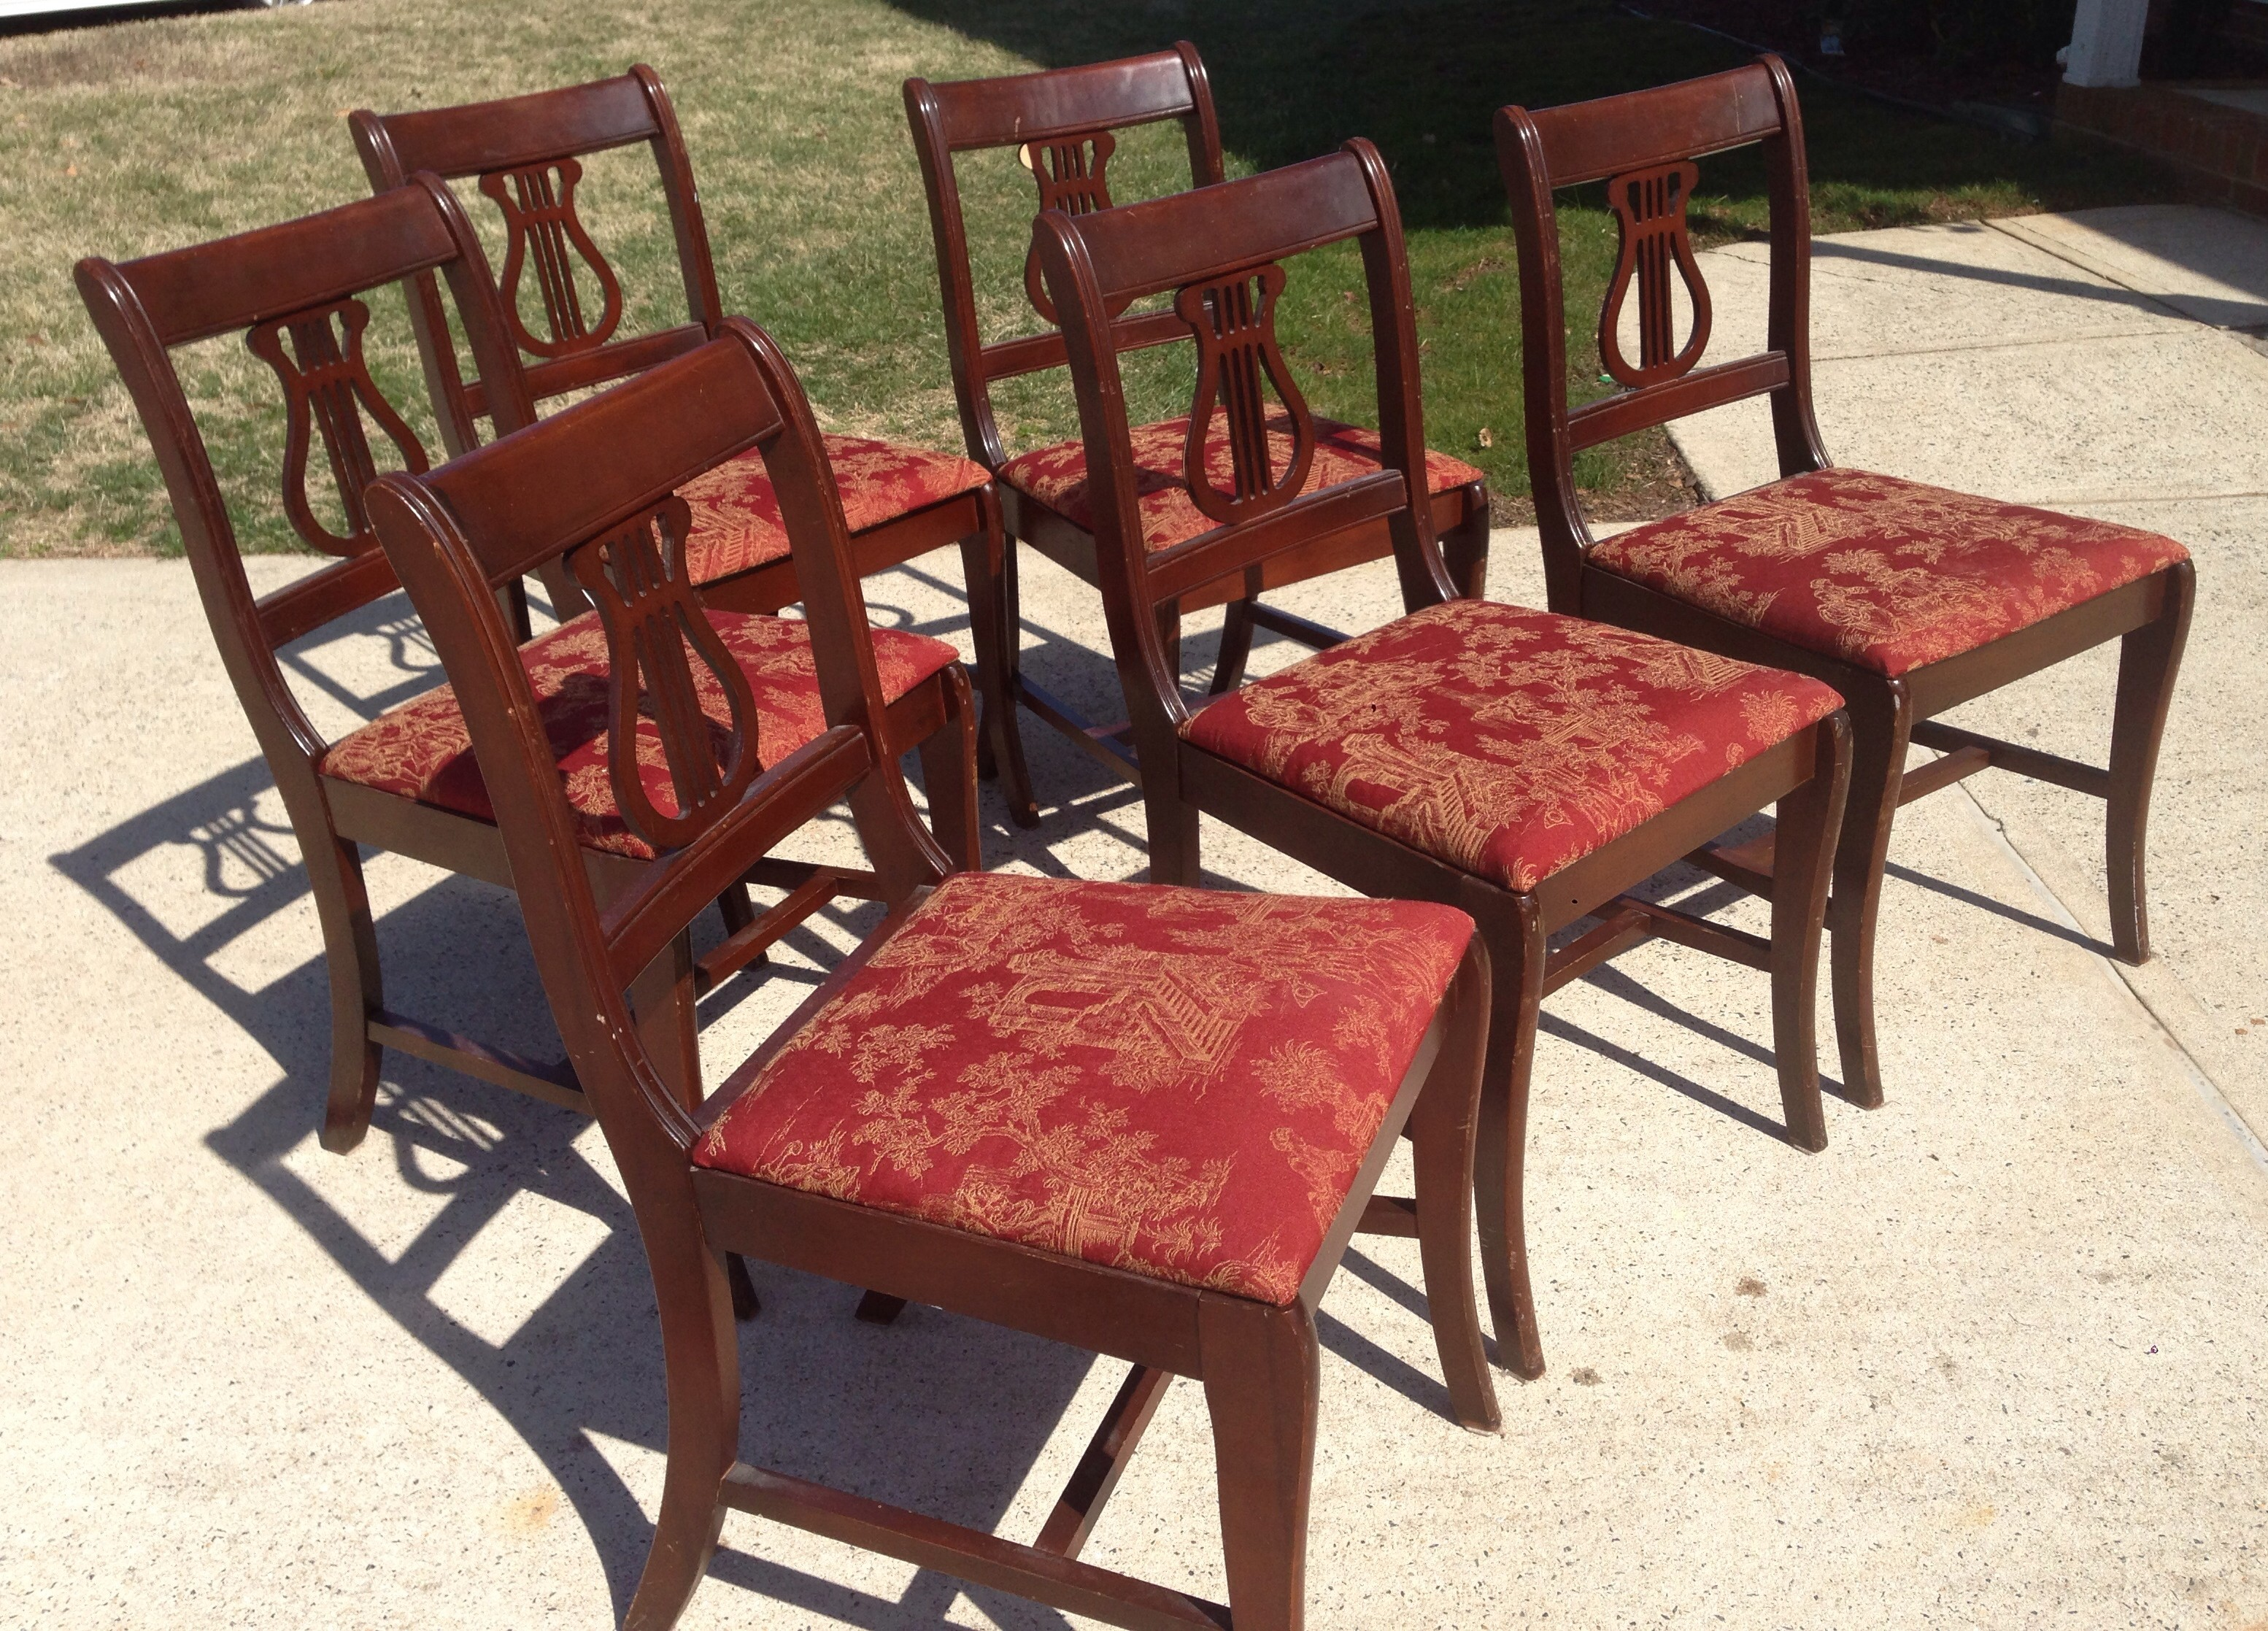 6 Duncan Phyfe style chairs Fresh Vintage NC